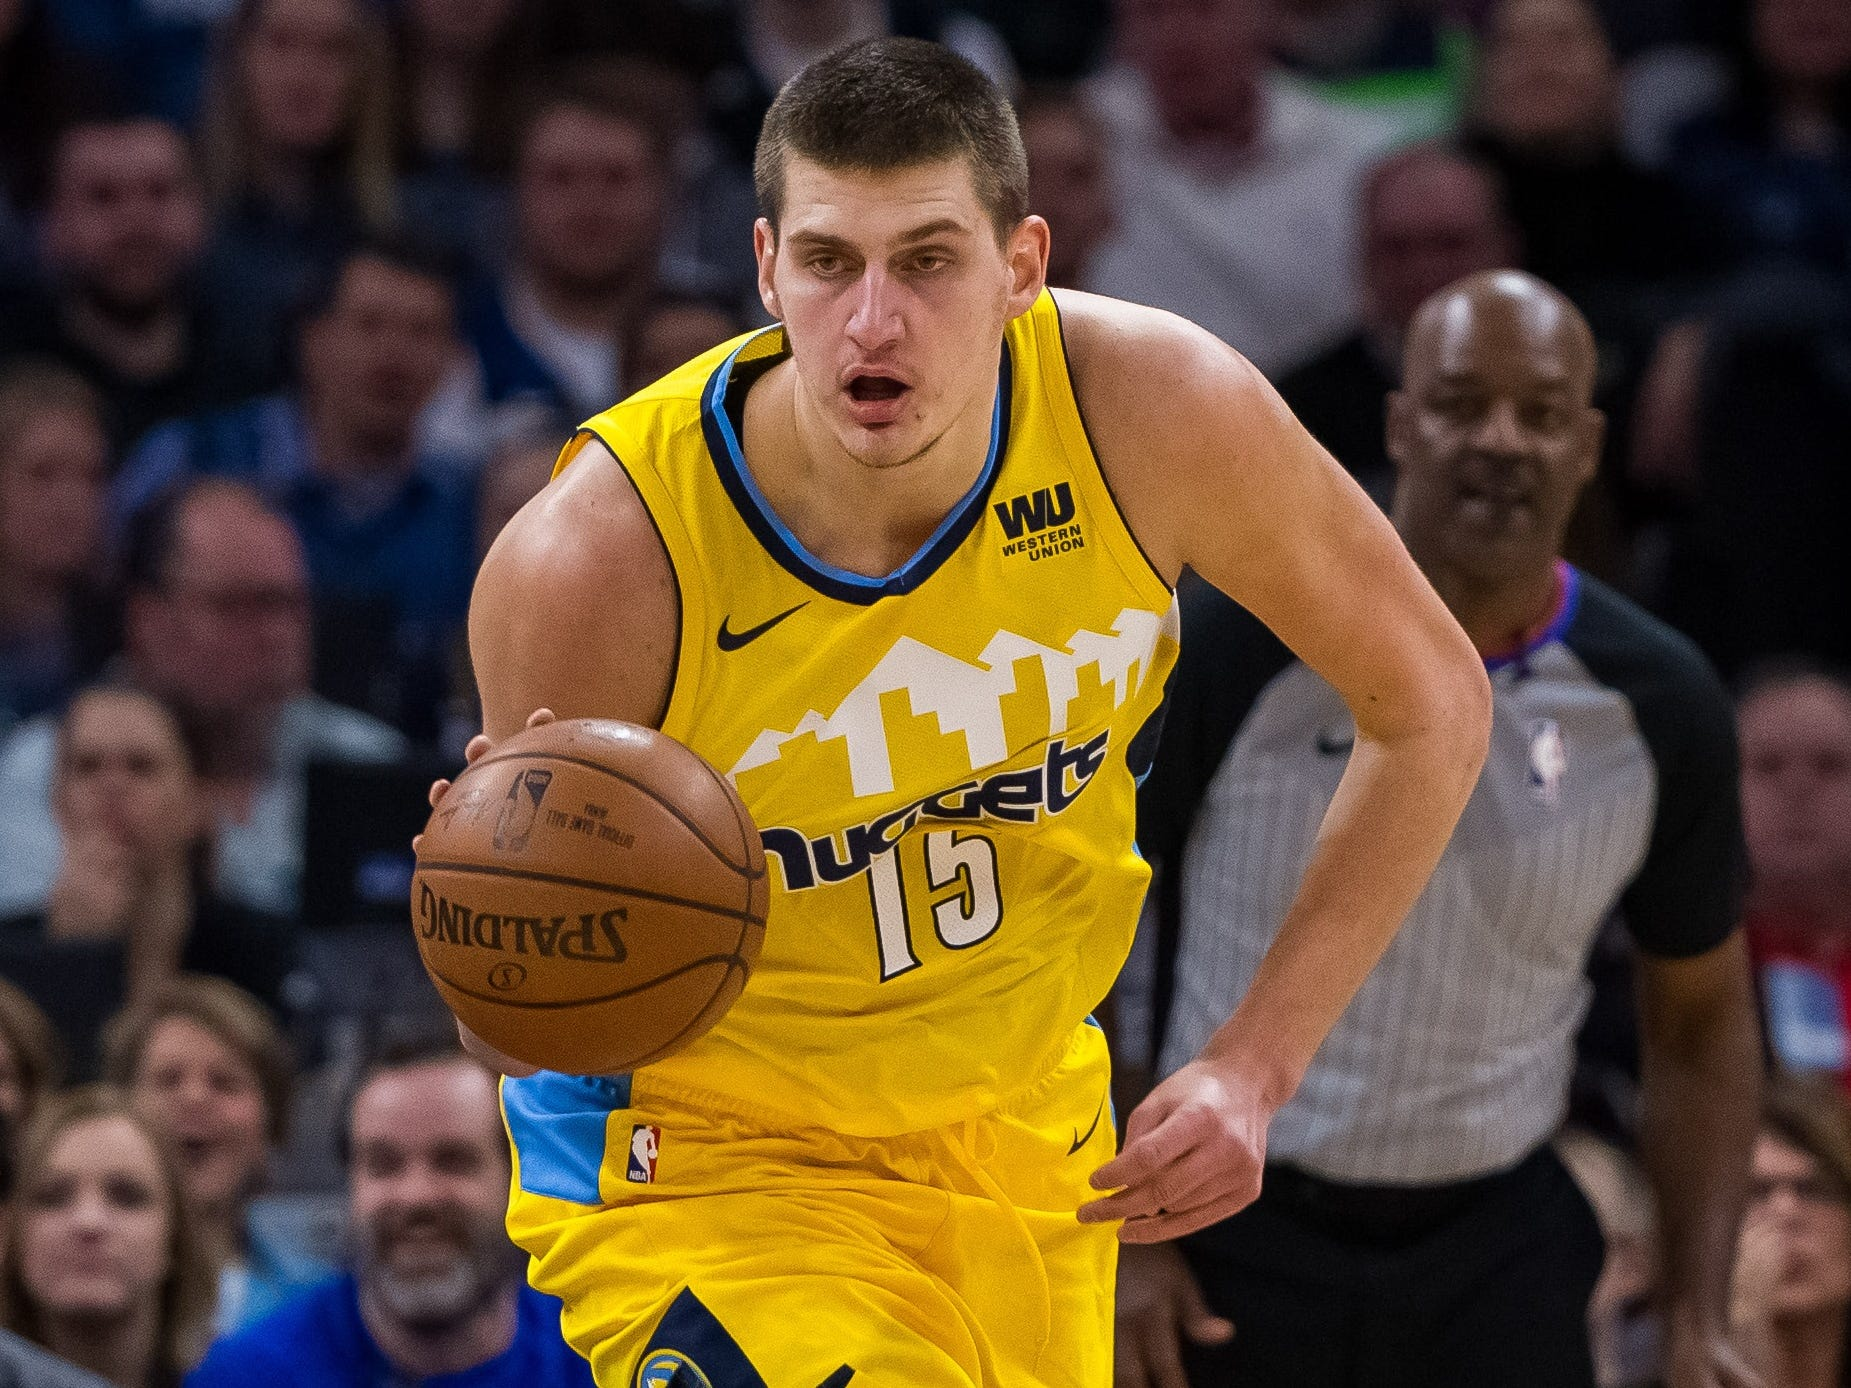 Nikola Jokic, Denver Nuggets — 23 (born 2/19/1995)